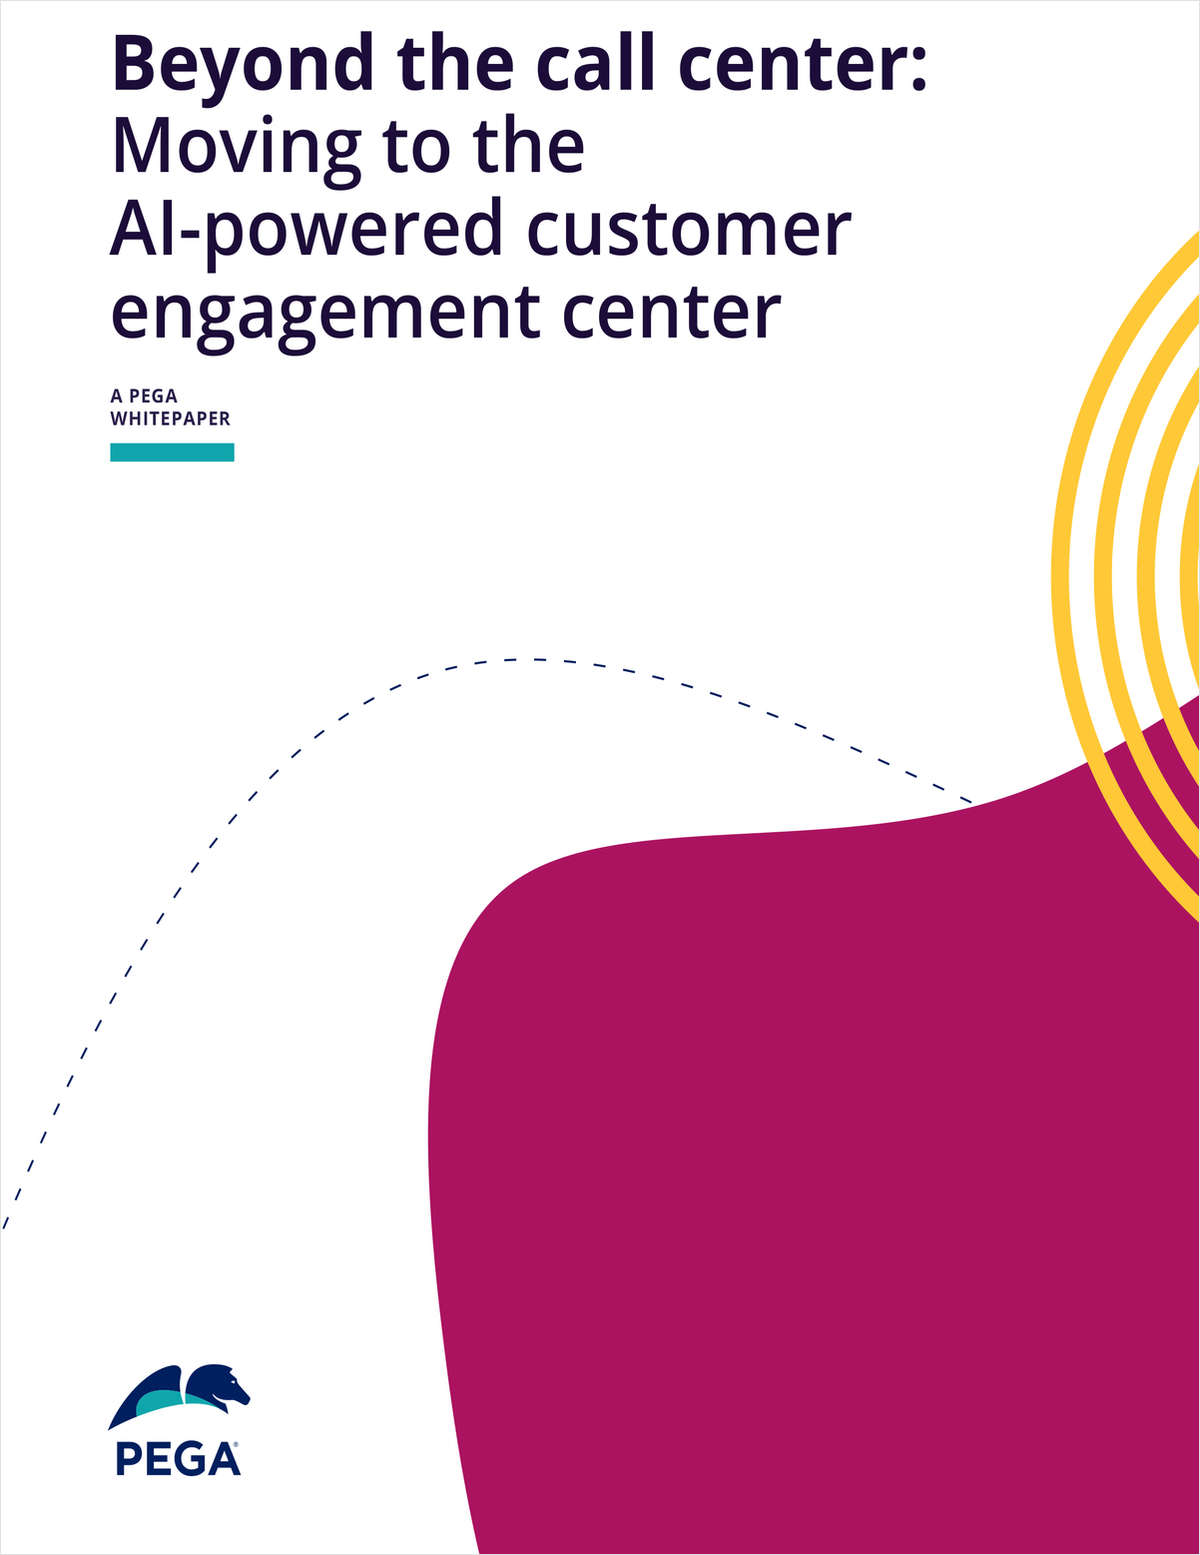 Beyond the call center: Moving to the AI-powered customer engagement center